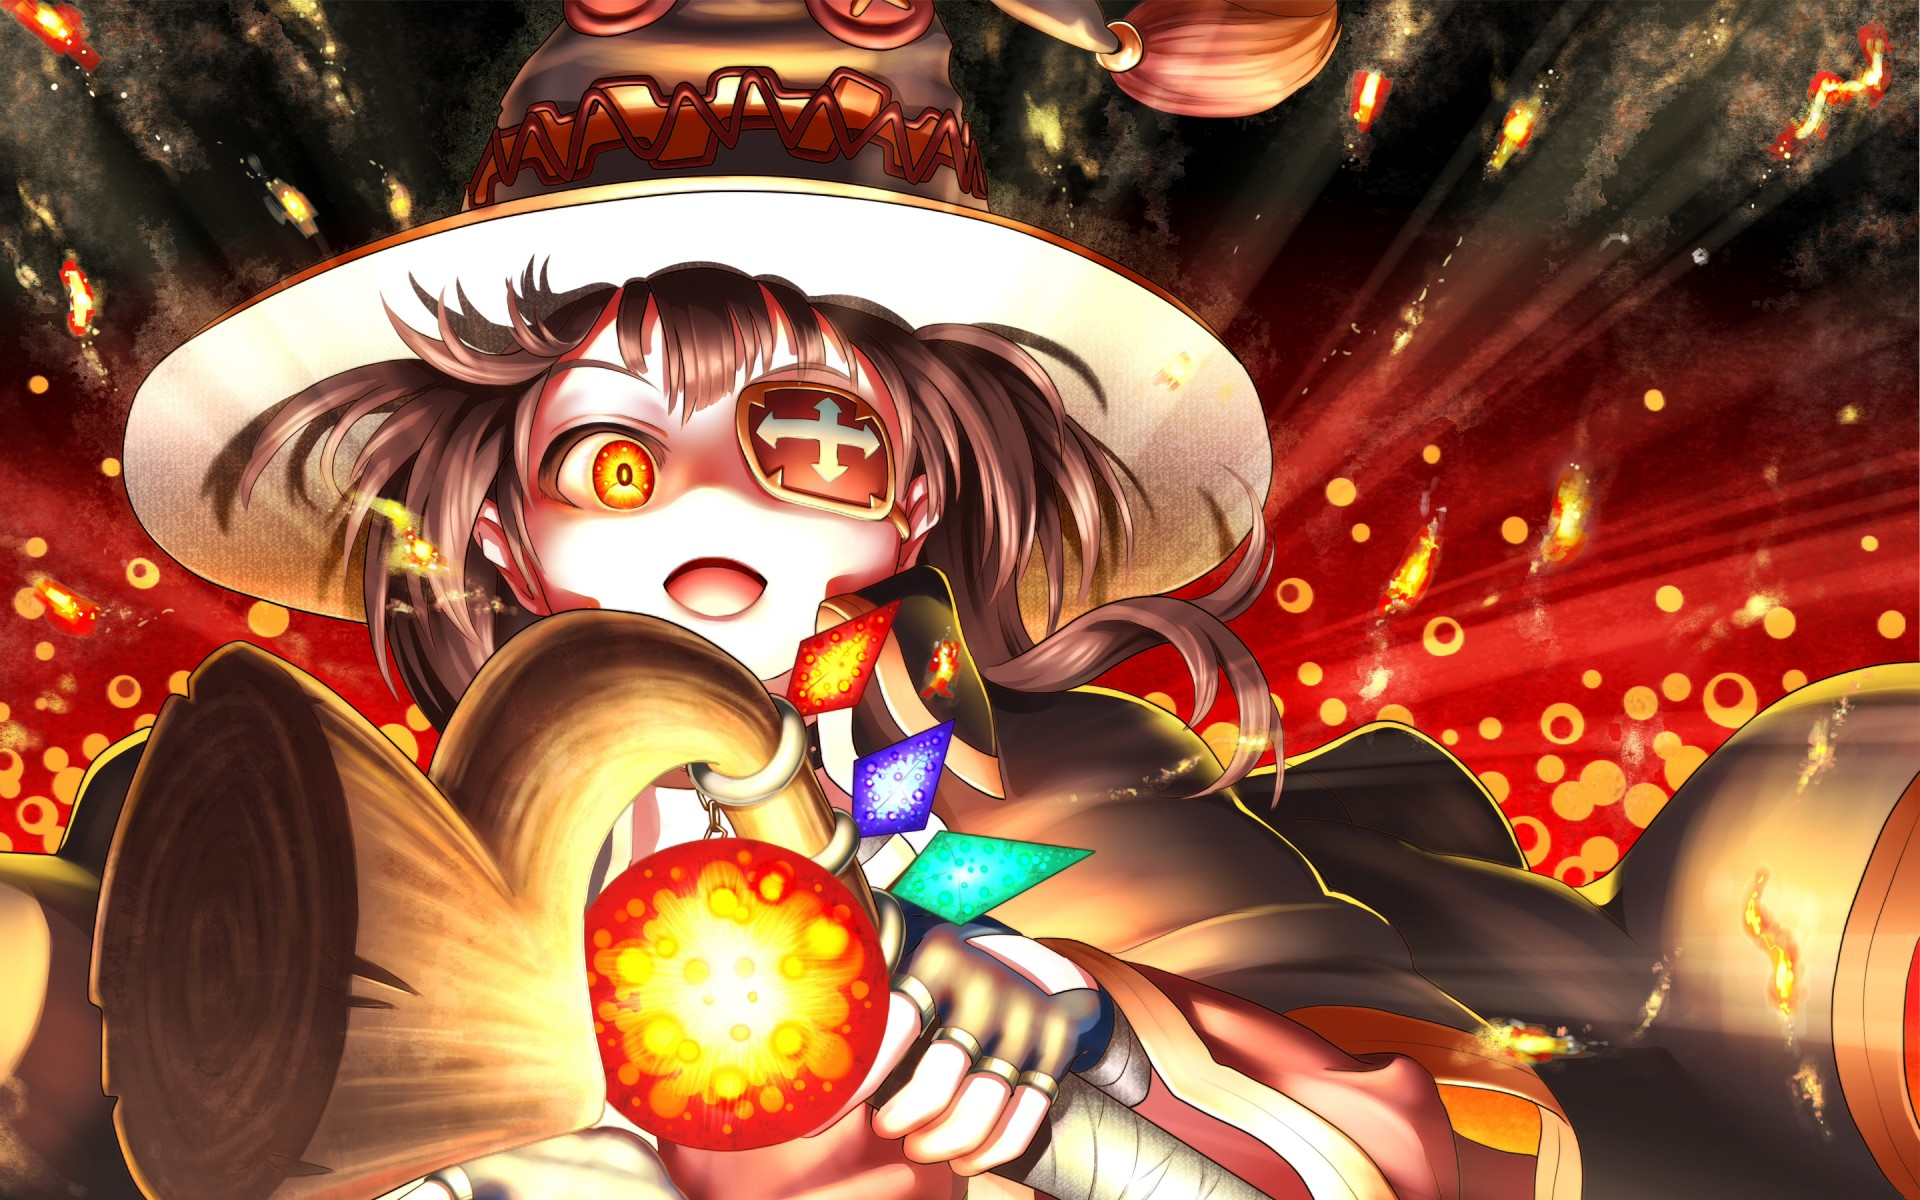 Alone Girl Wallpapers Download Megumin Anime 4k Wallpapers Hd Wallpapers Id 17113